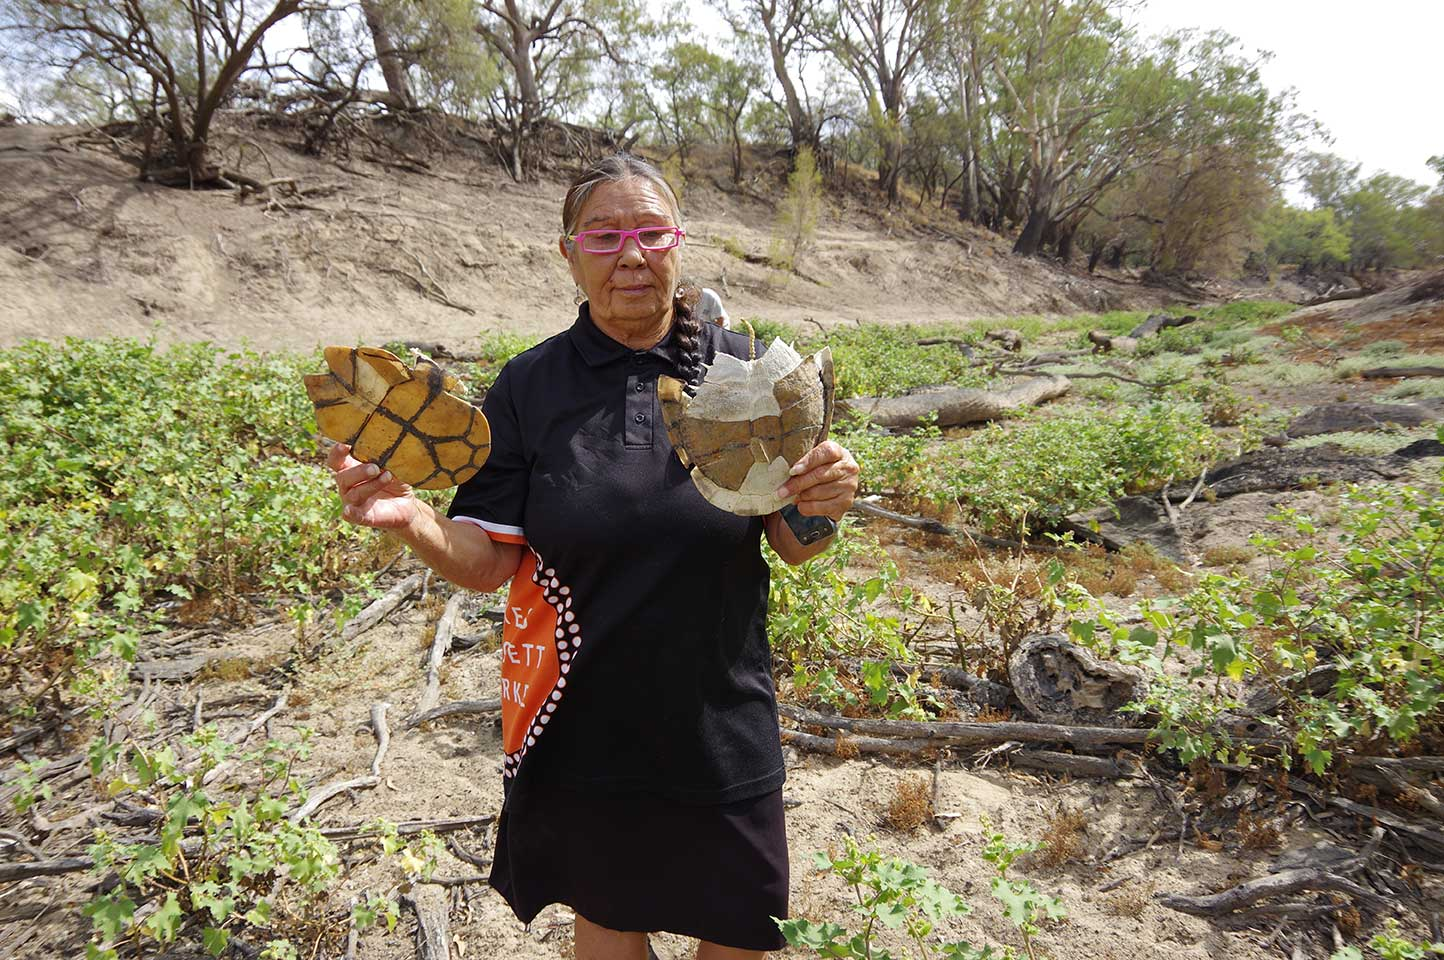 DEG's Kim Sullivan at the dry Barwon River bed 26/3/19.